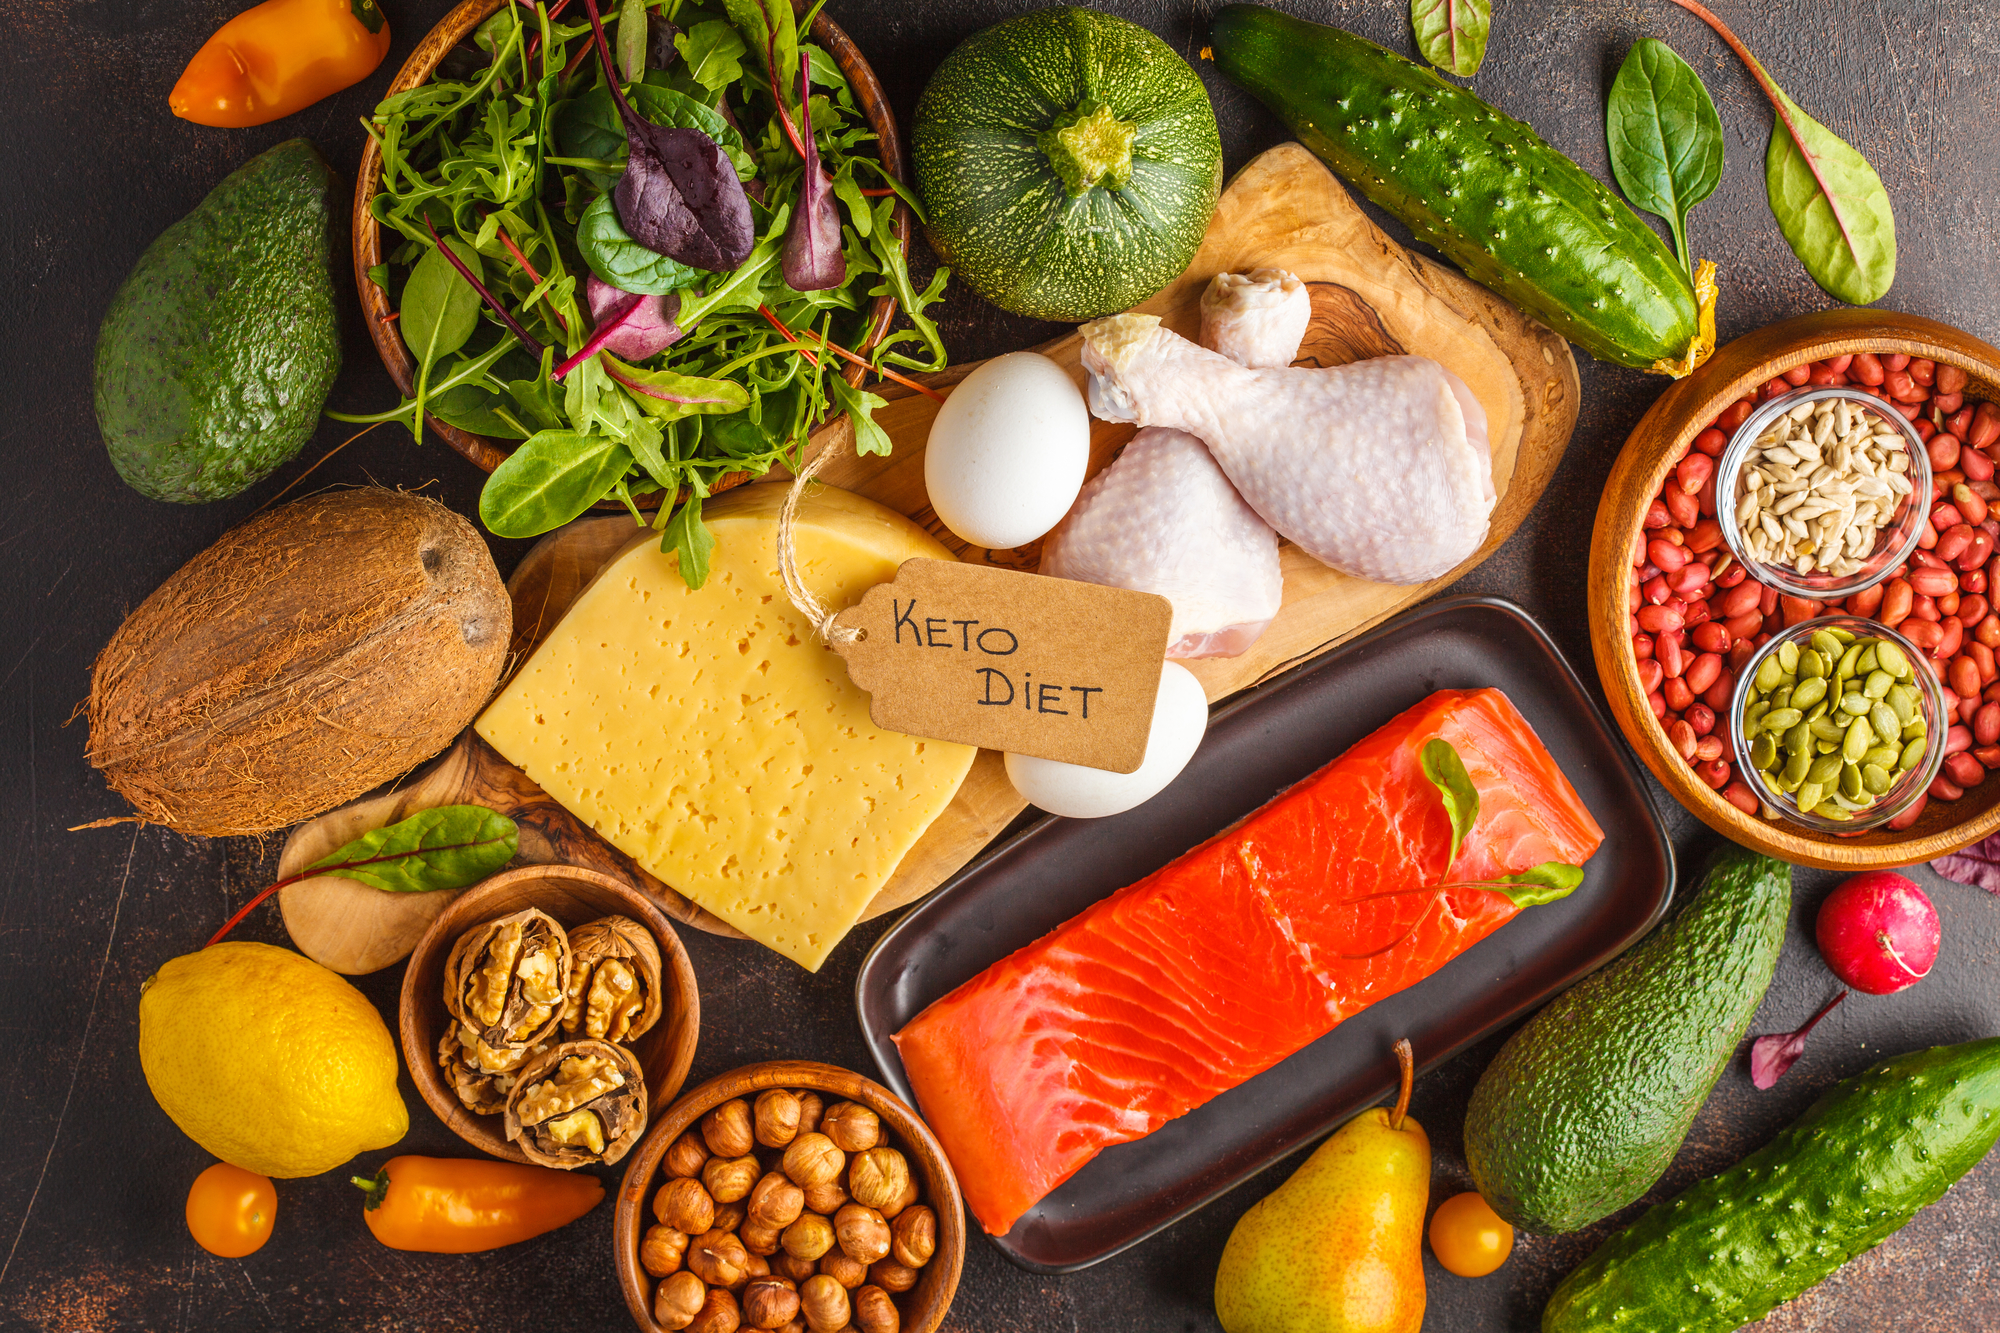 ketogenic diet and disease prevention